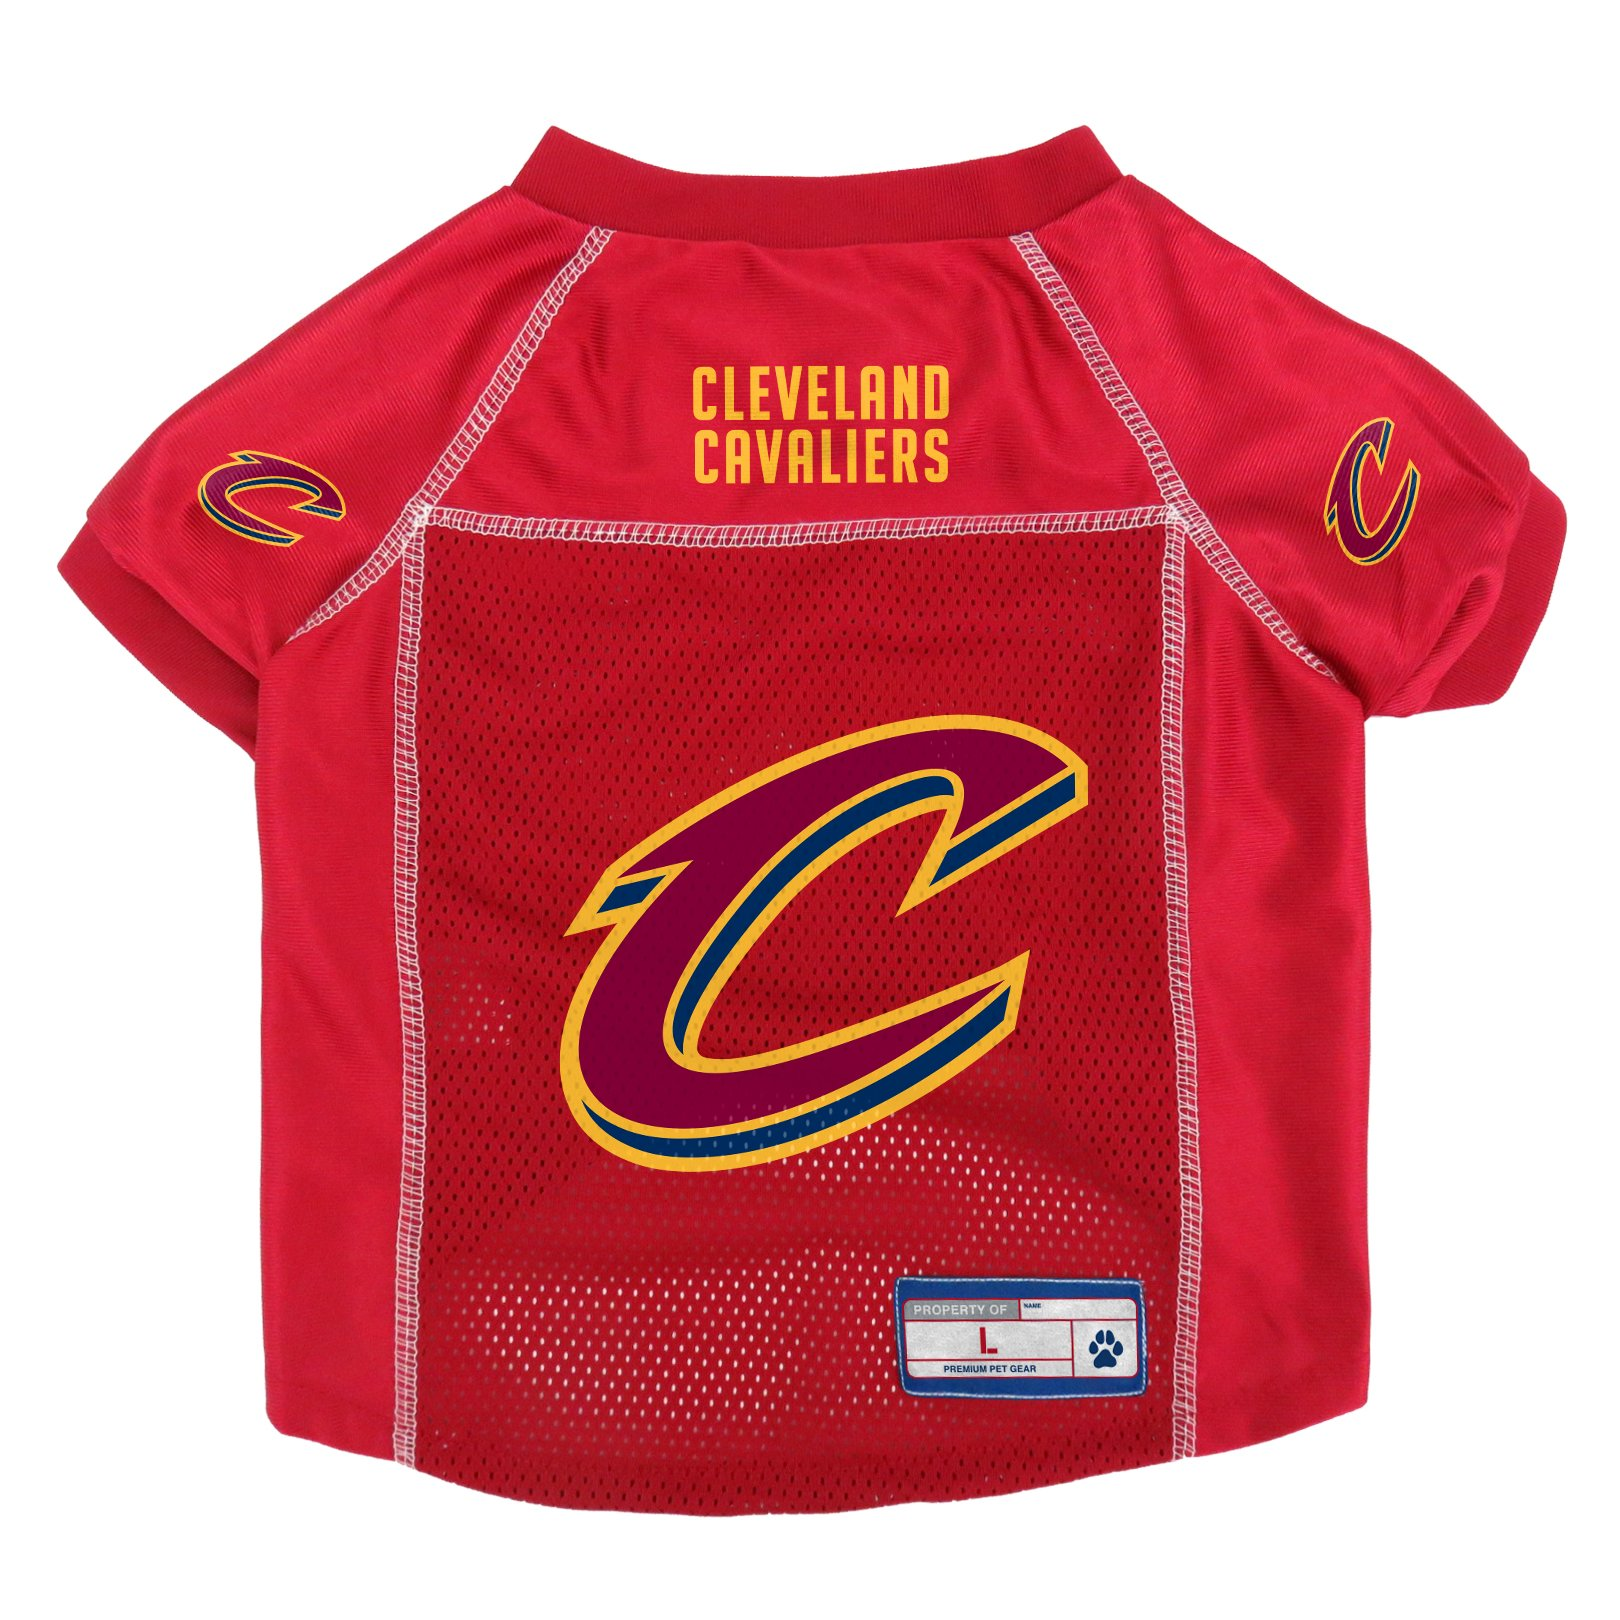 Cleveland Cavaliers Official NBA Pet Jersey Size L by Little Earth 875060